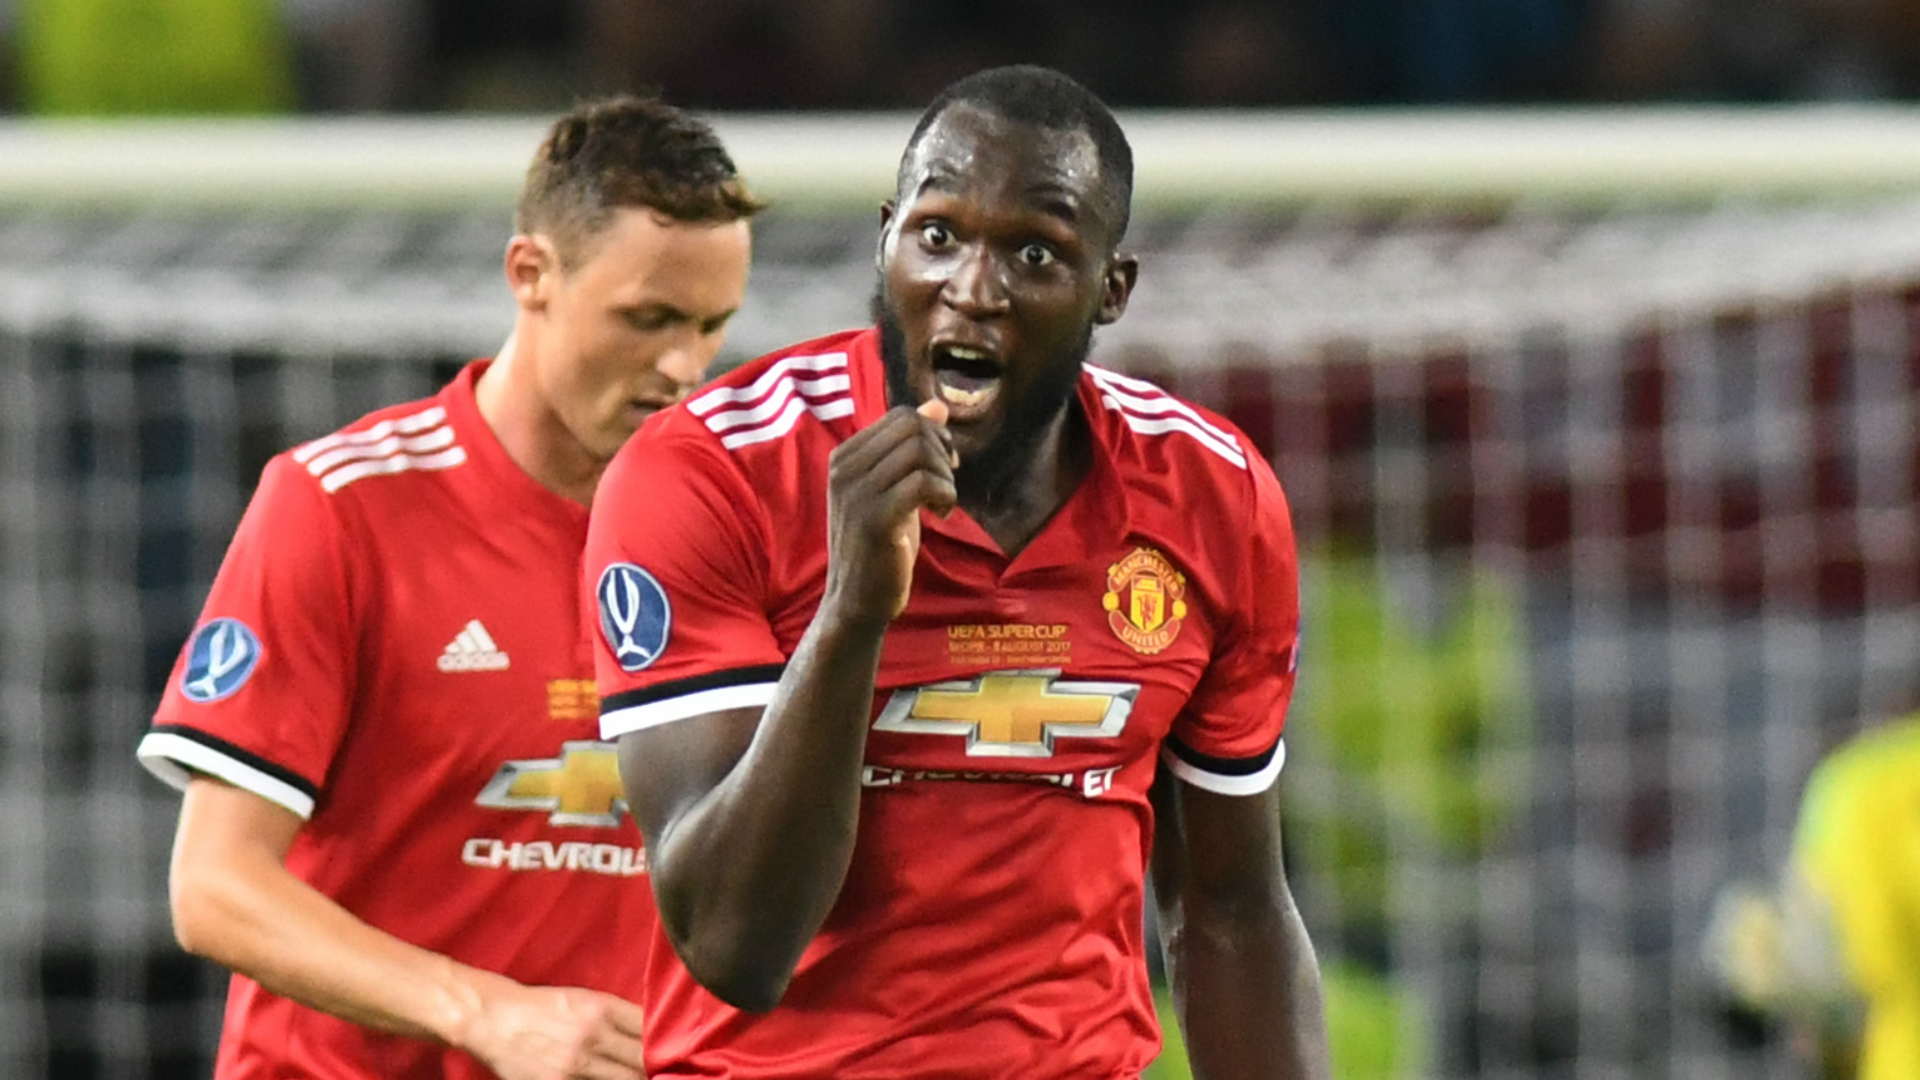 Man Utd at least two years off Real Madrid - Mourinho